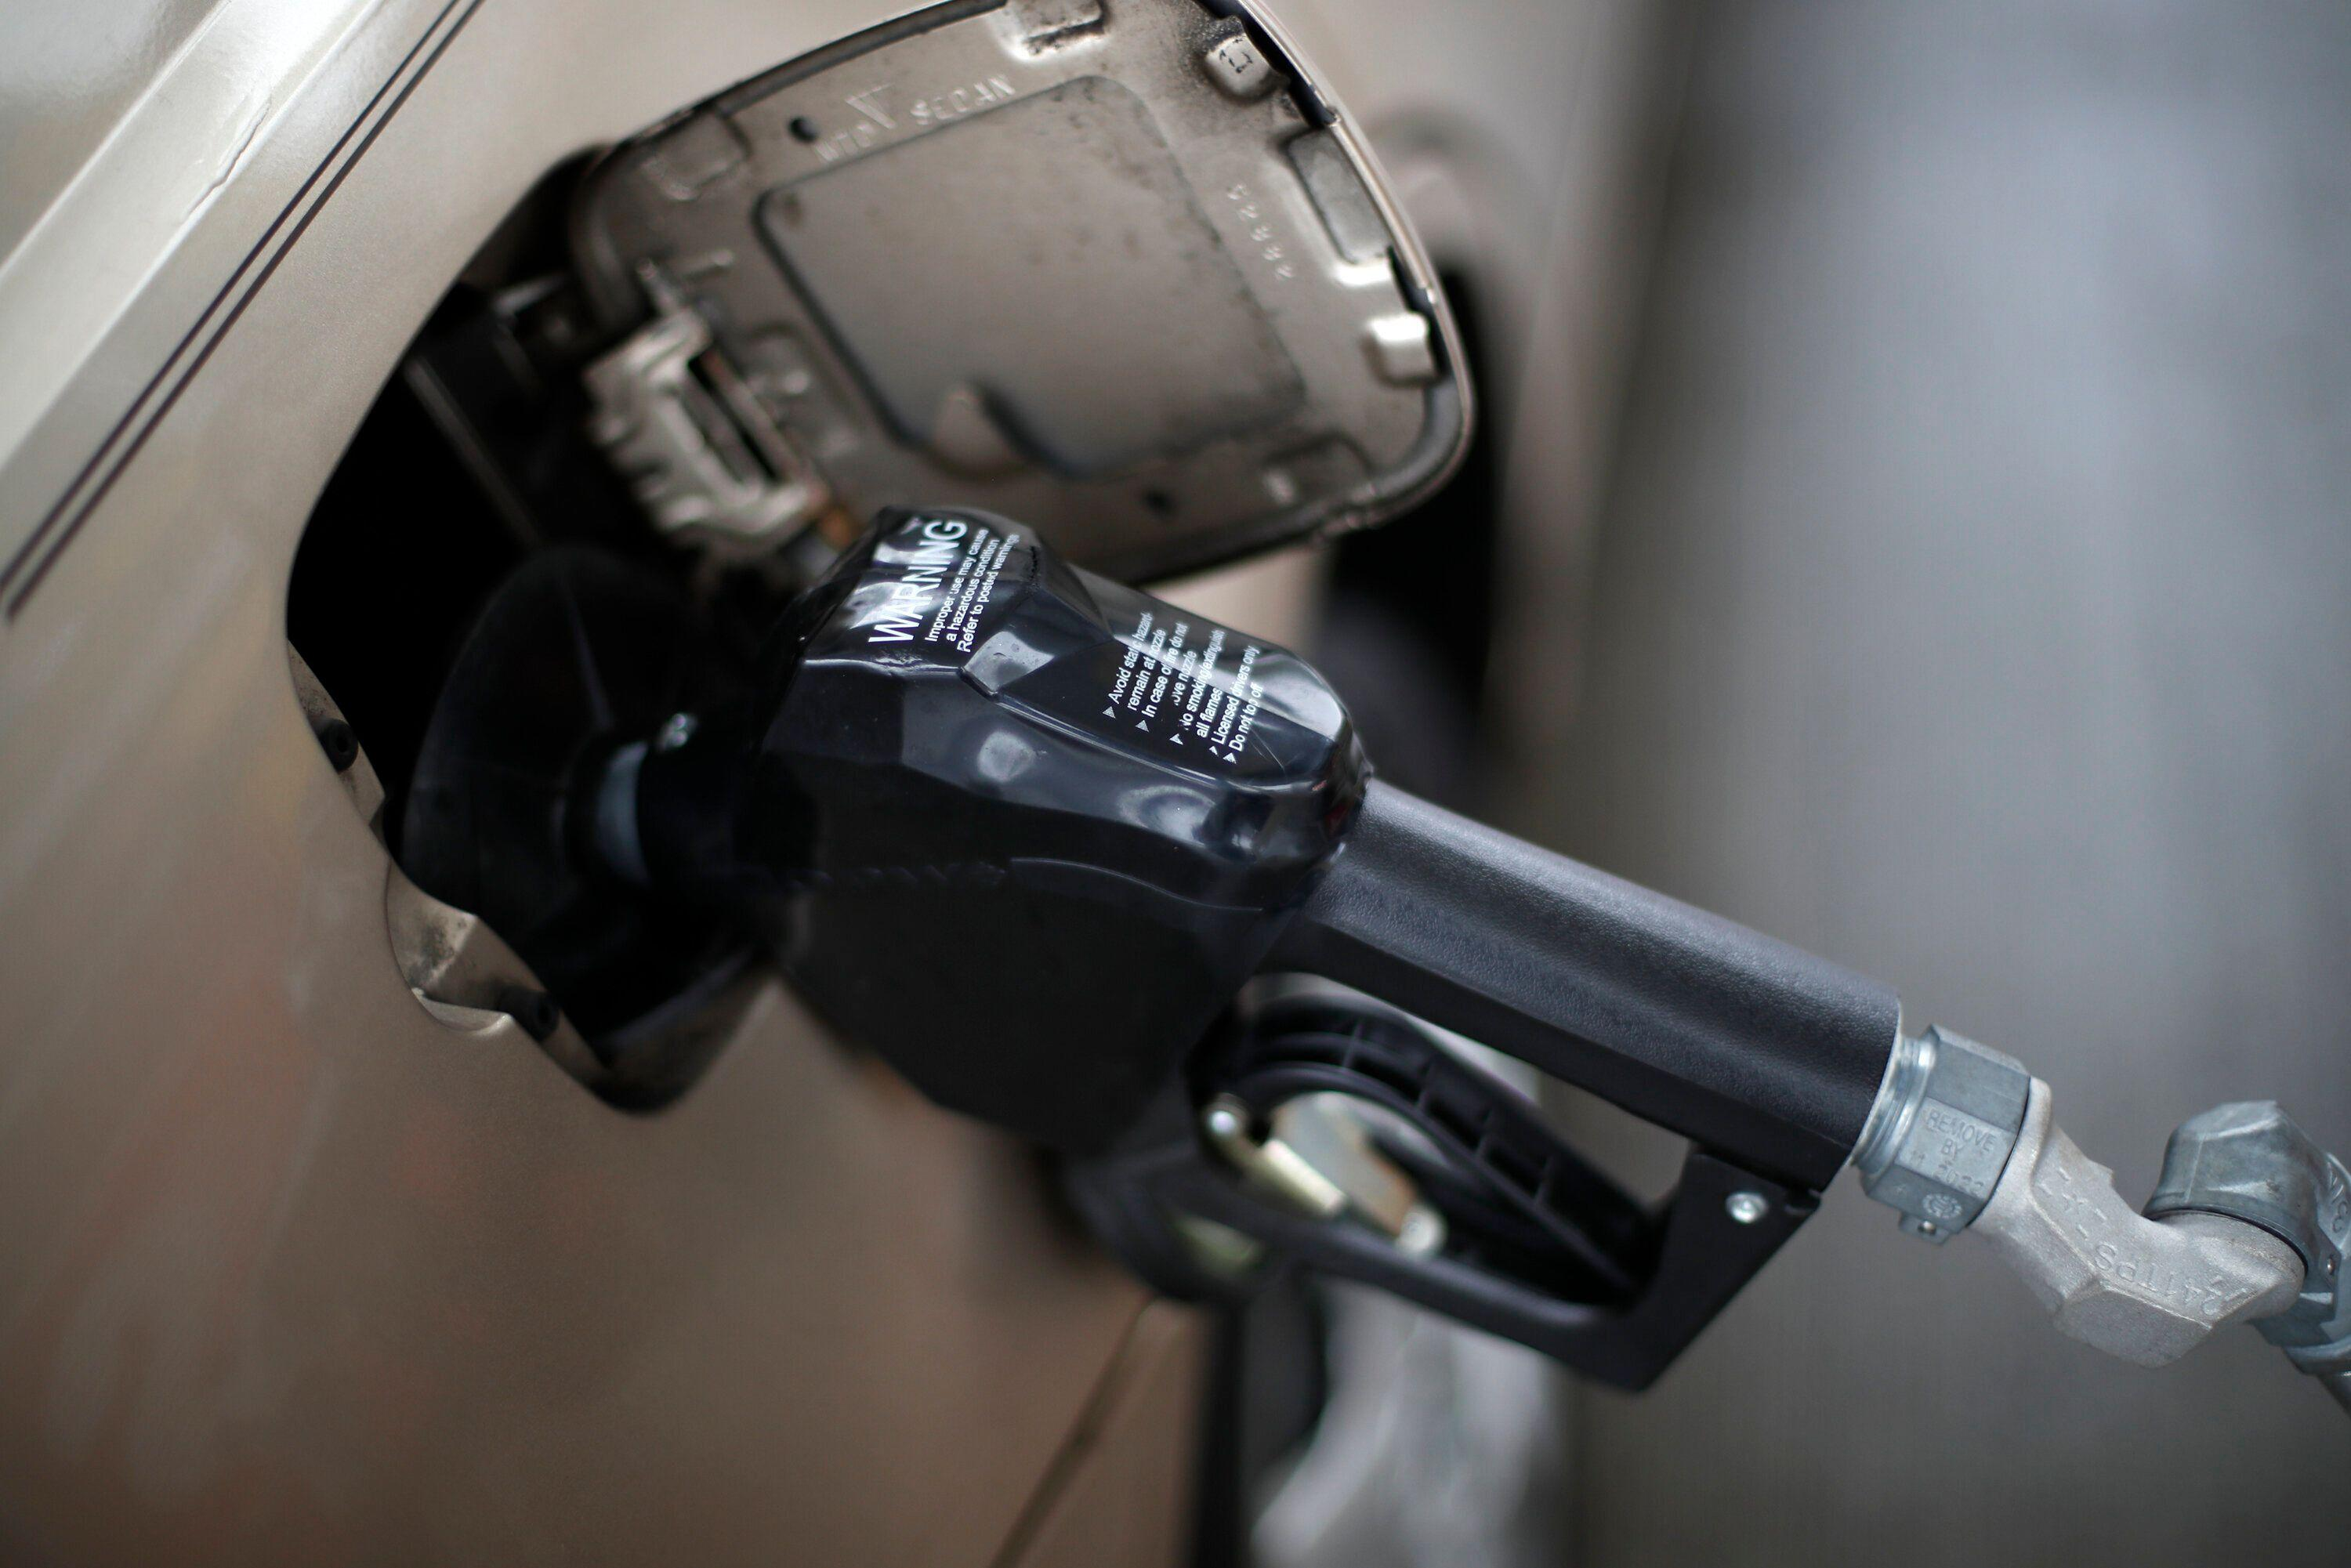 Gas prices have 44% of Canadians struggling to afford basics, survey finds